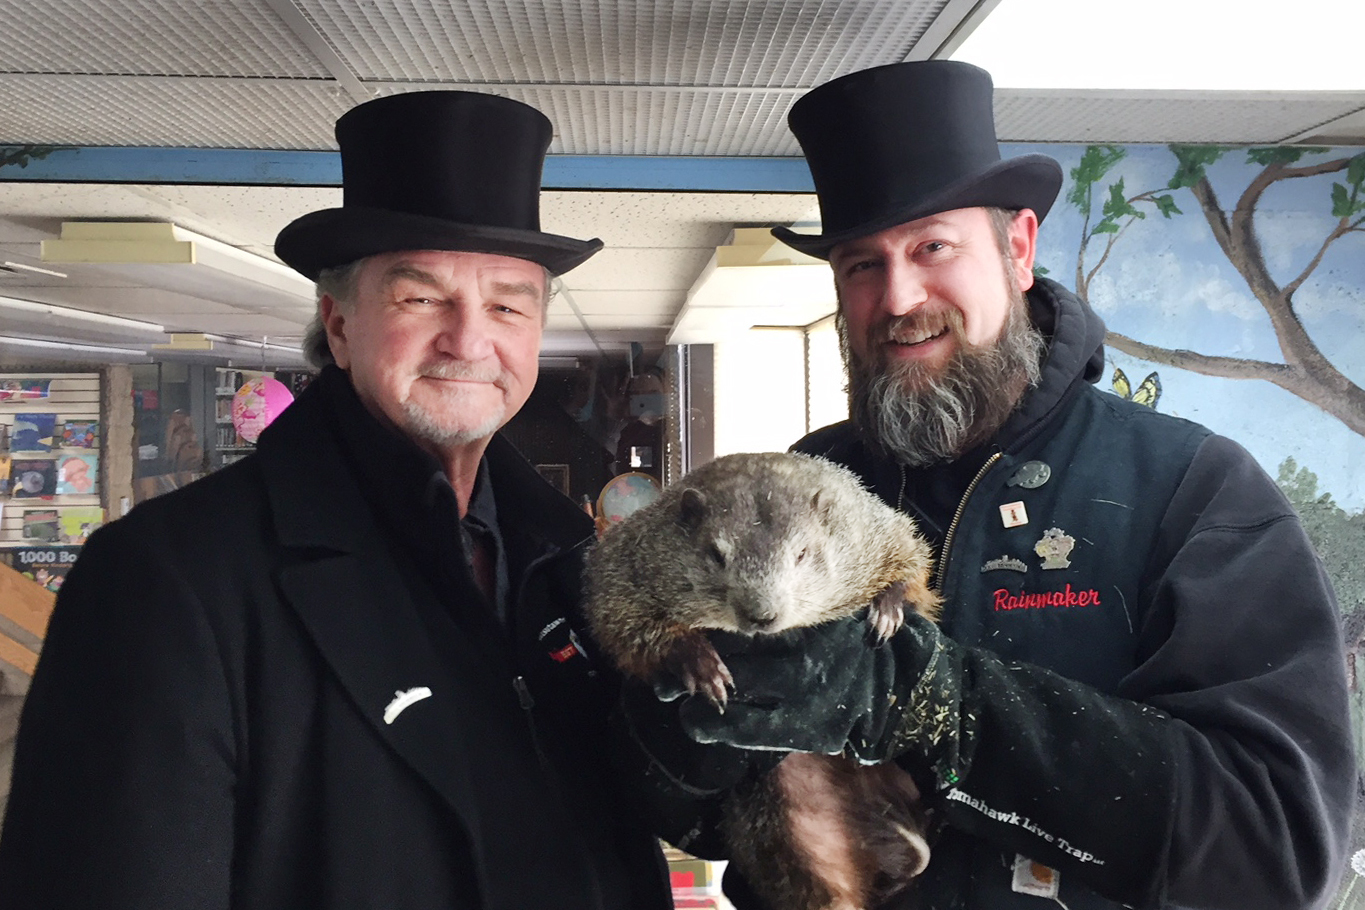 Groundhog Day: Should we put stock in Punxsutawney Phil's predictions?